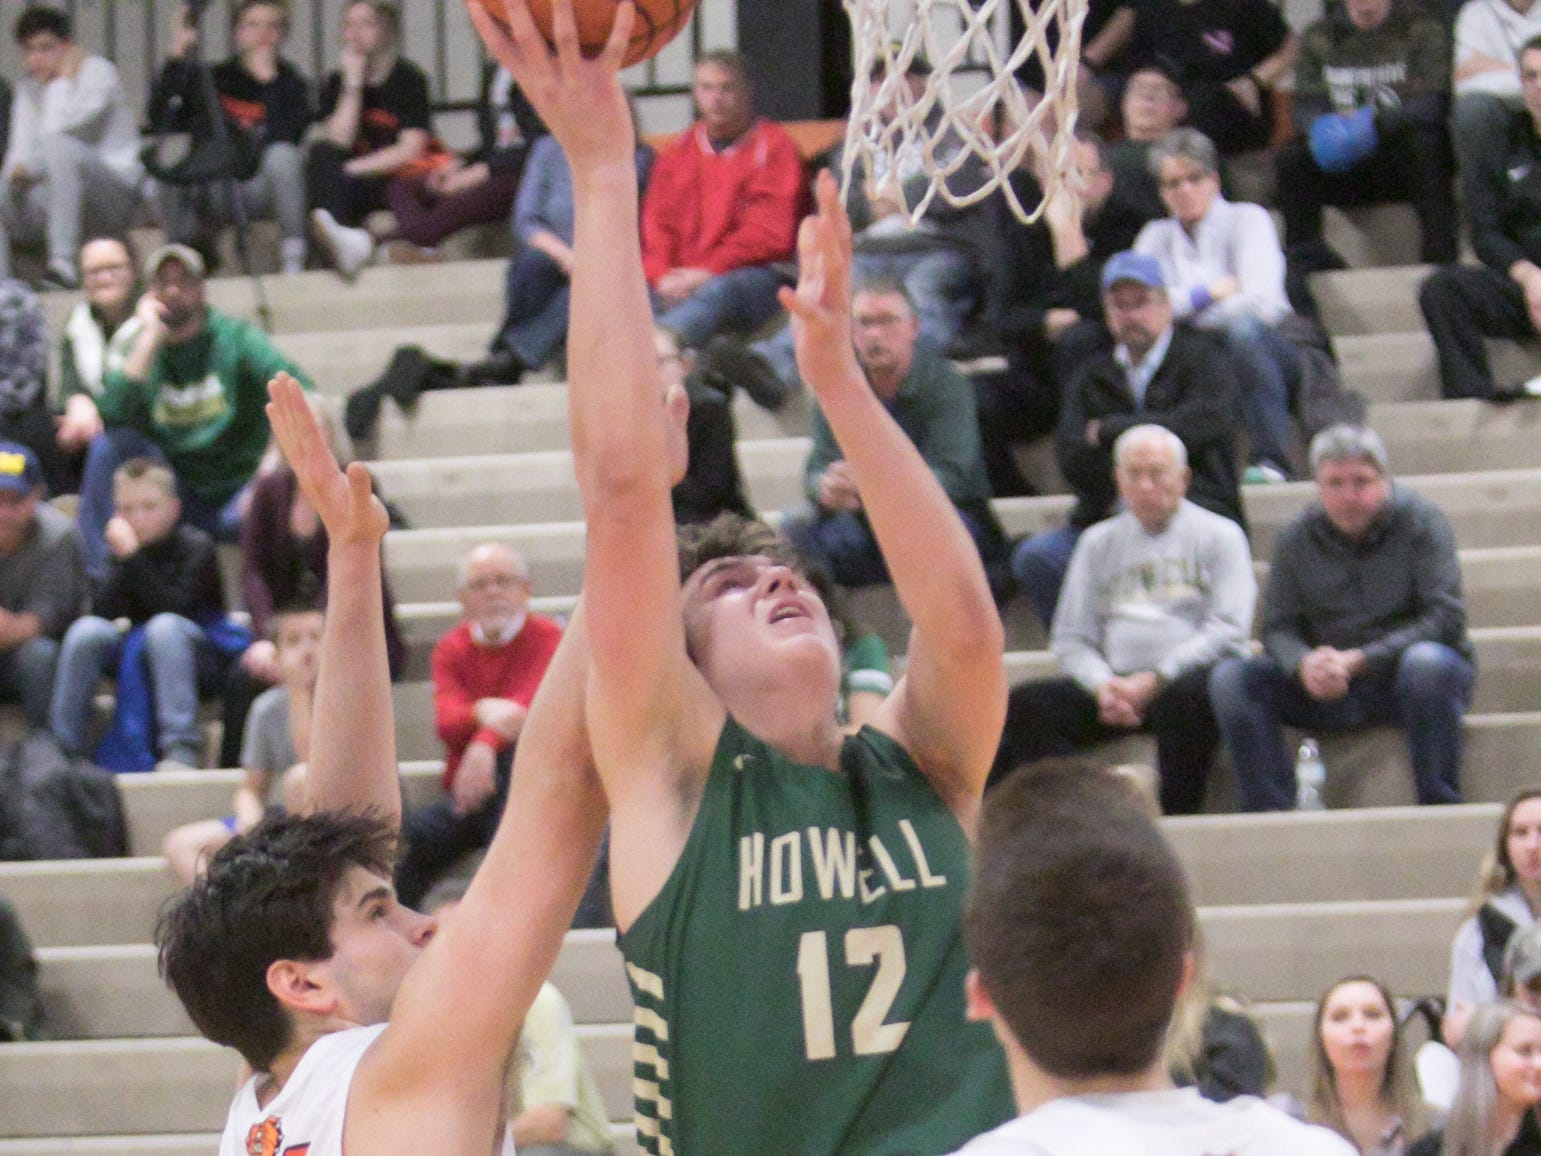 Howell's Tony Honkala makes a shot in the fourth quarter of a 65-63 overtime victory at Brighton on Tuesday, Jan. 8, 2019.